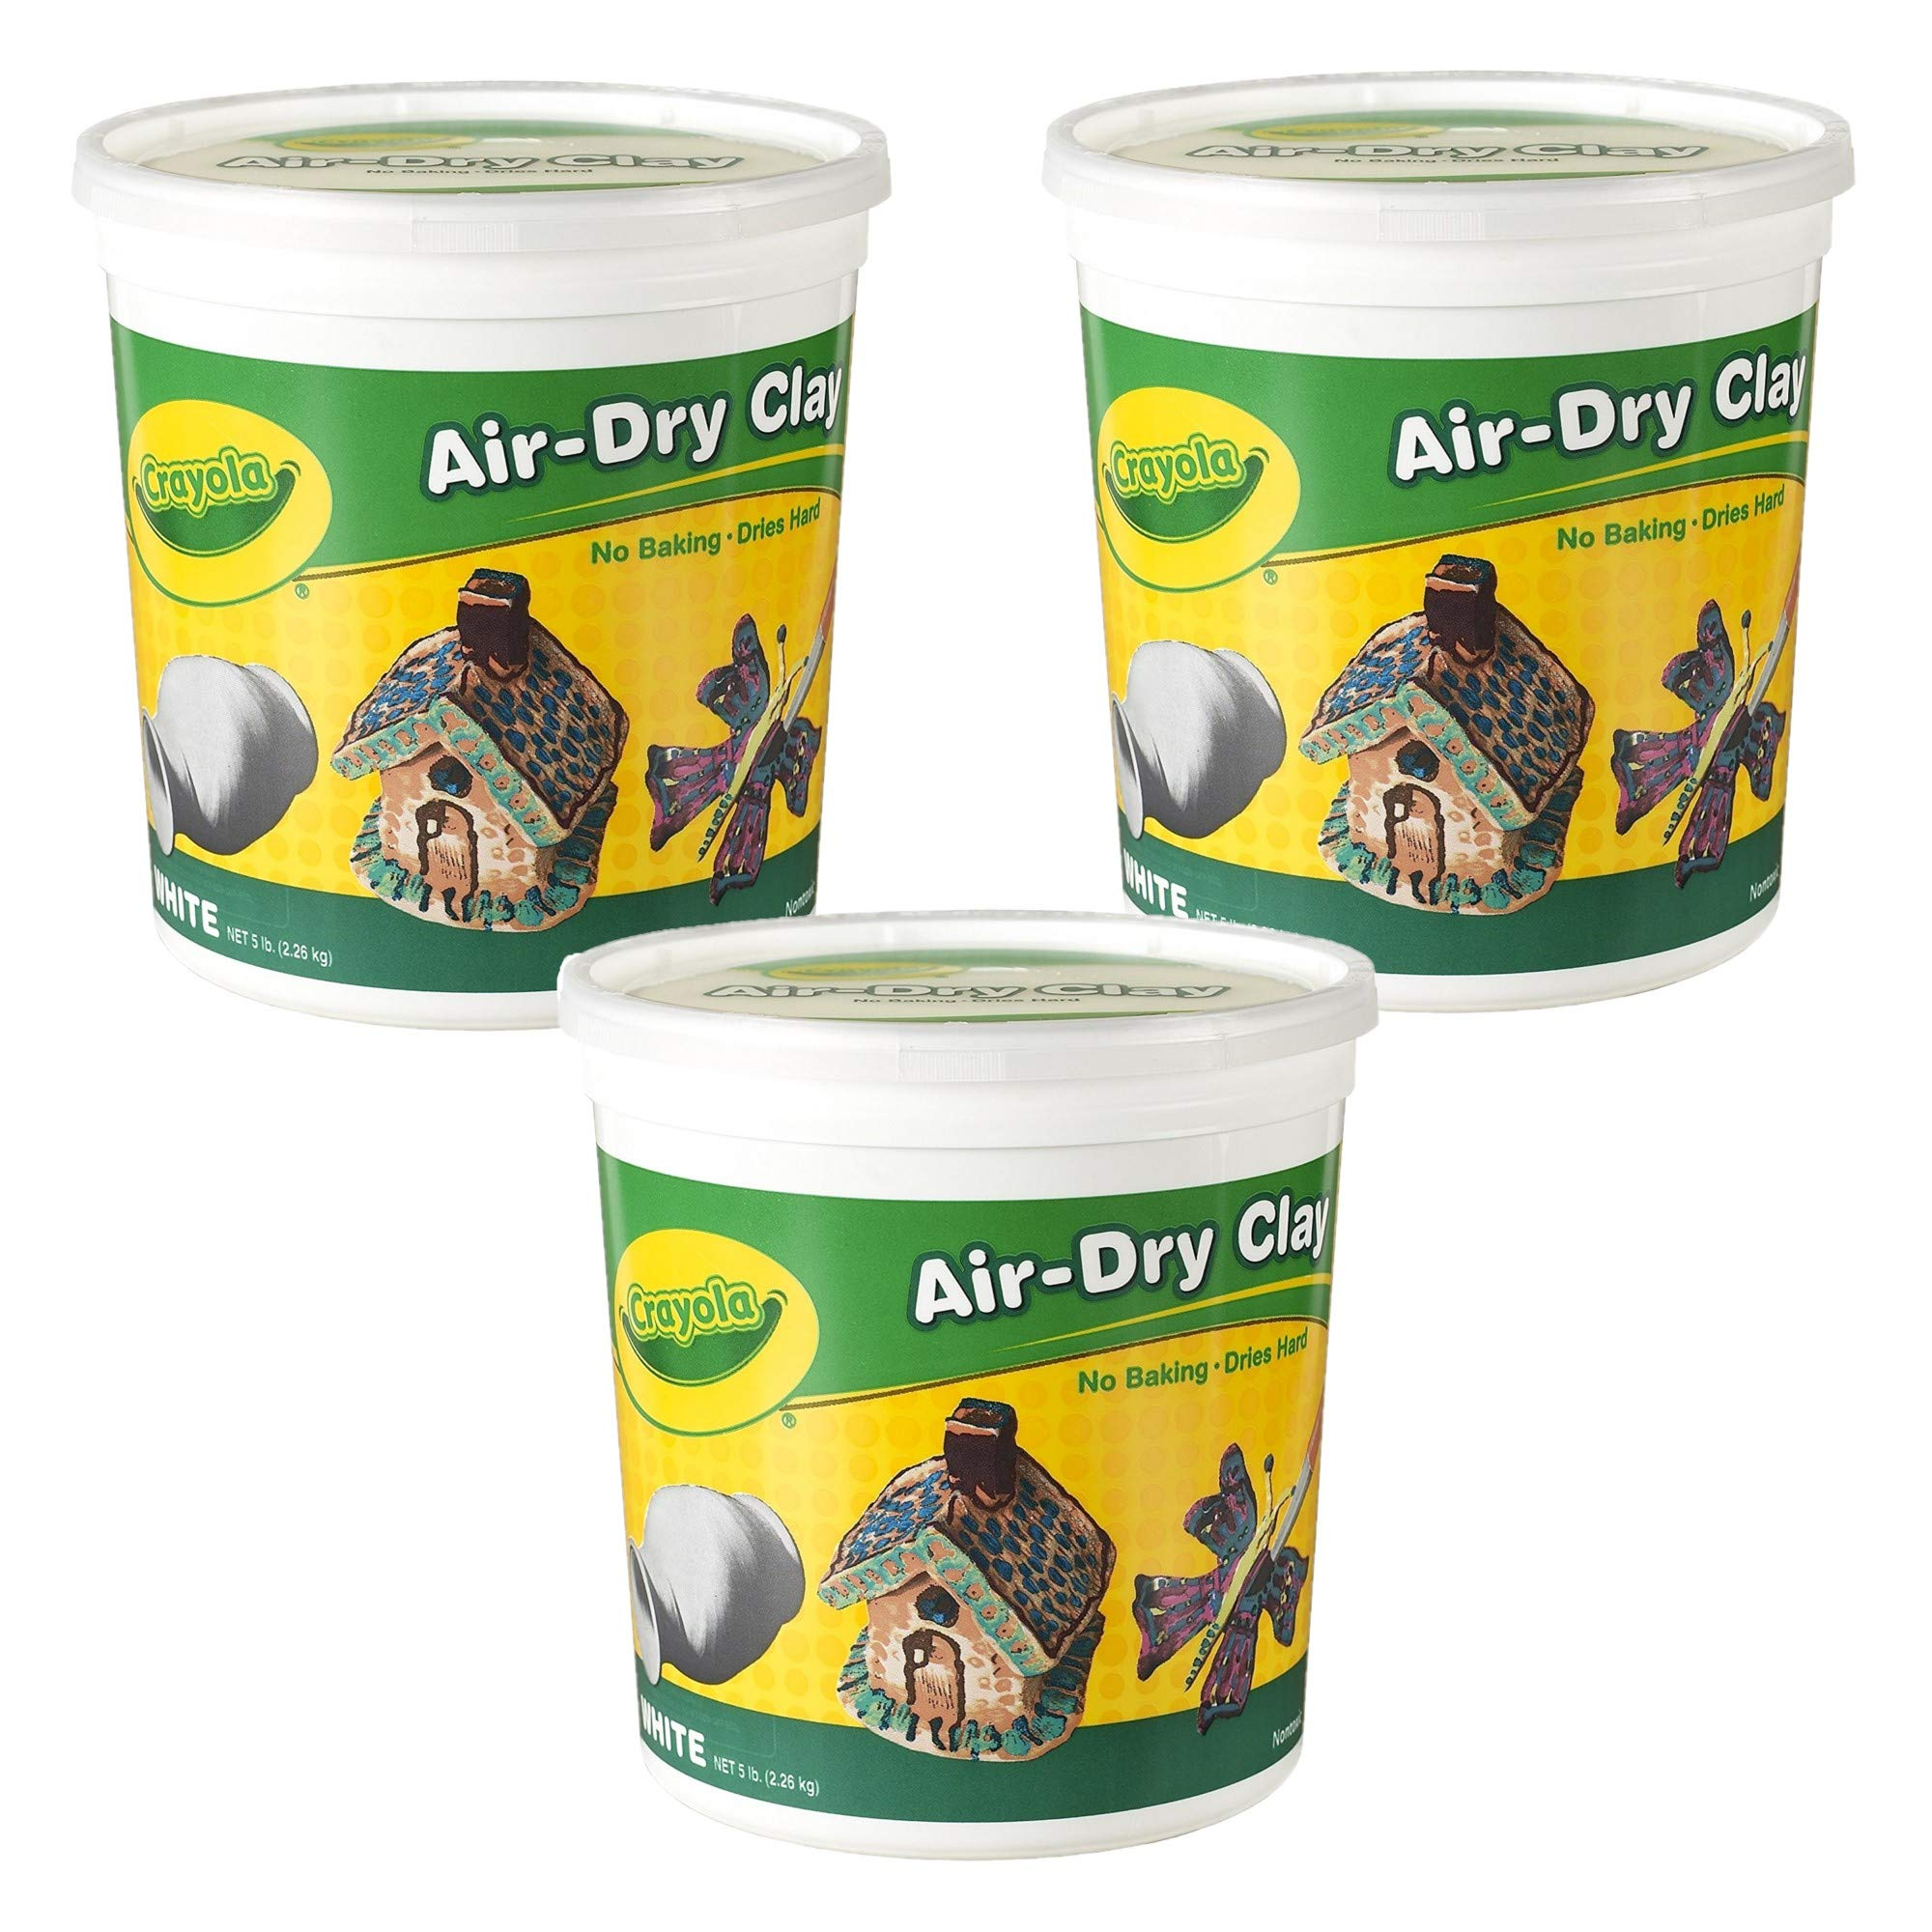 Crayola Air-Dry Clay, White, 5 pounds Resealable Bucket, For Classroom, Educational, Art Tools, 3 Pack (15 pounds Total)